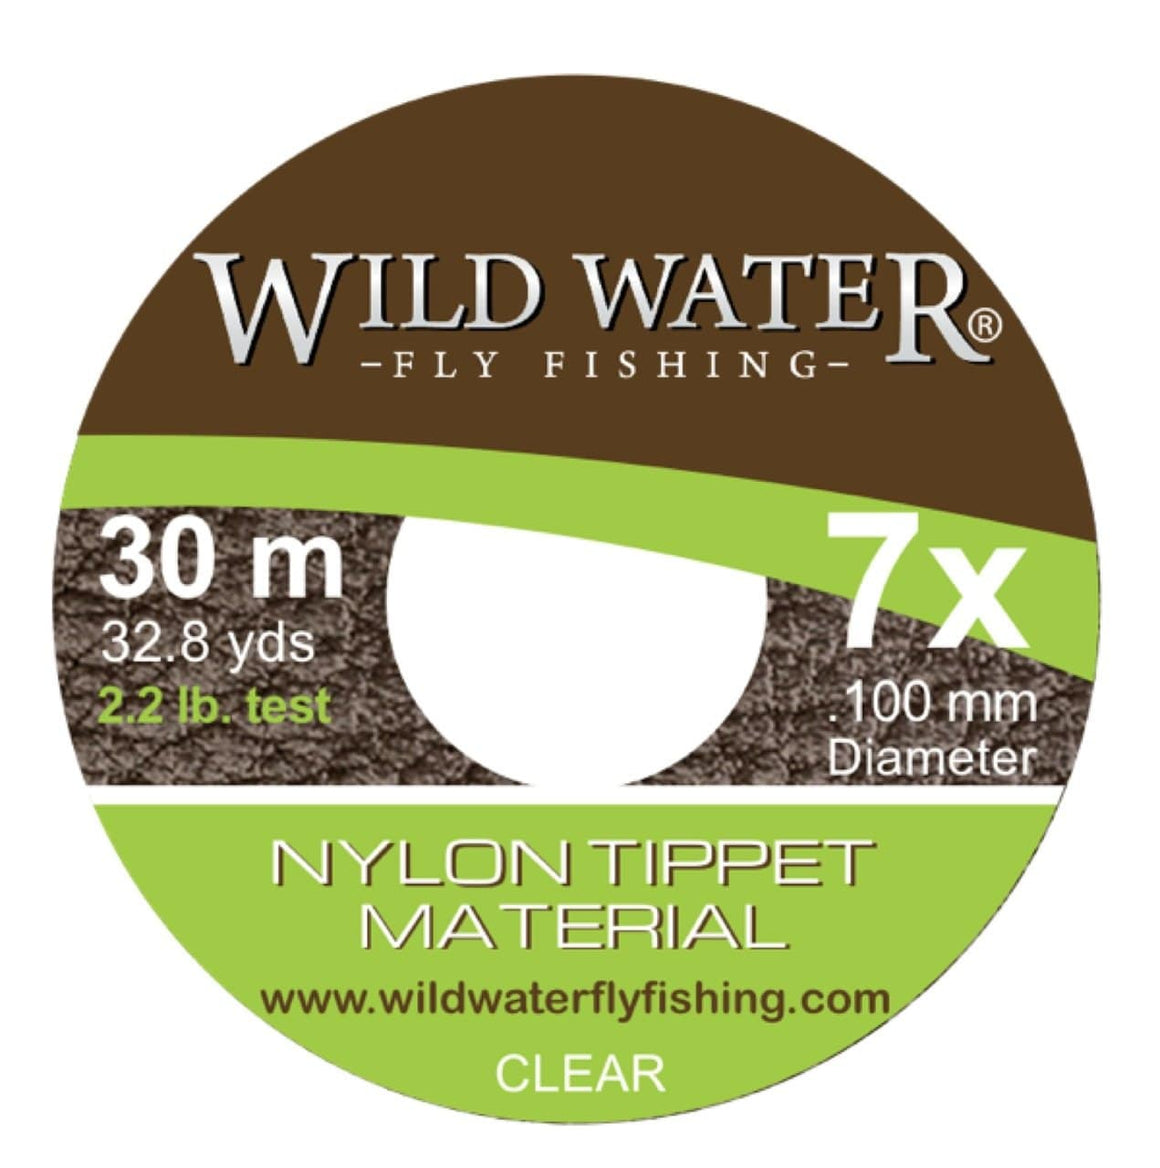 Wild Water Fly FIshing 7X Tippet - Wild Water Fly Fishing